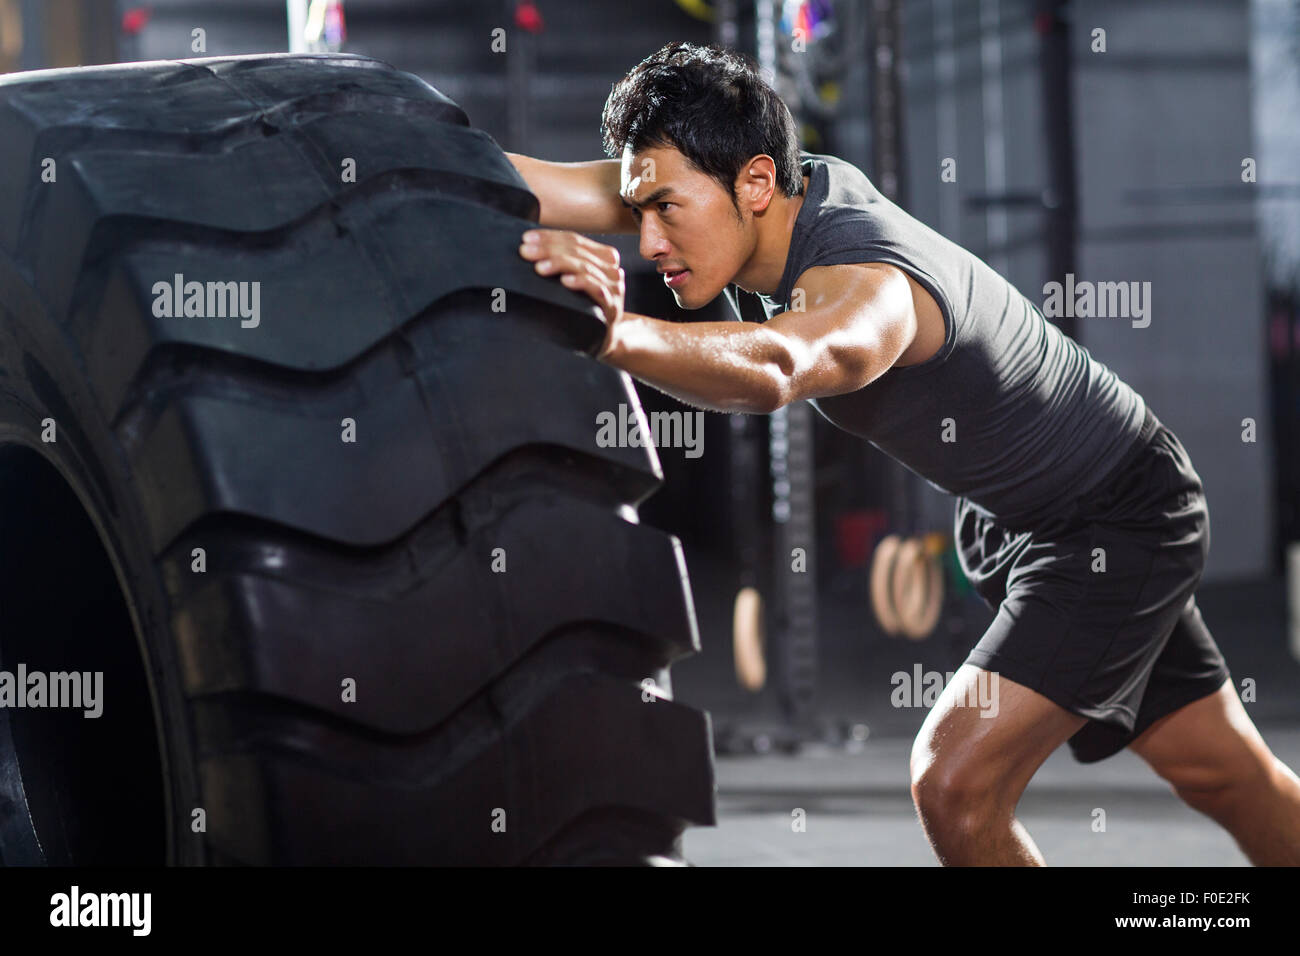 Young man pushing large tire in crossfit gym - Stock Image